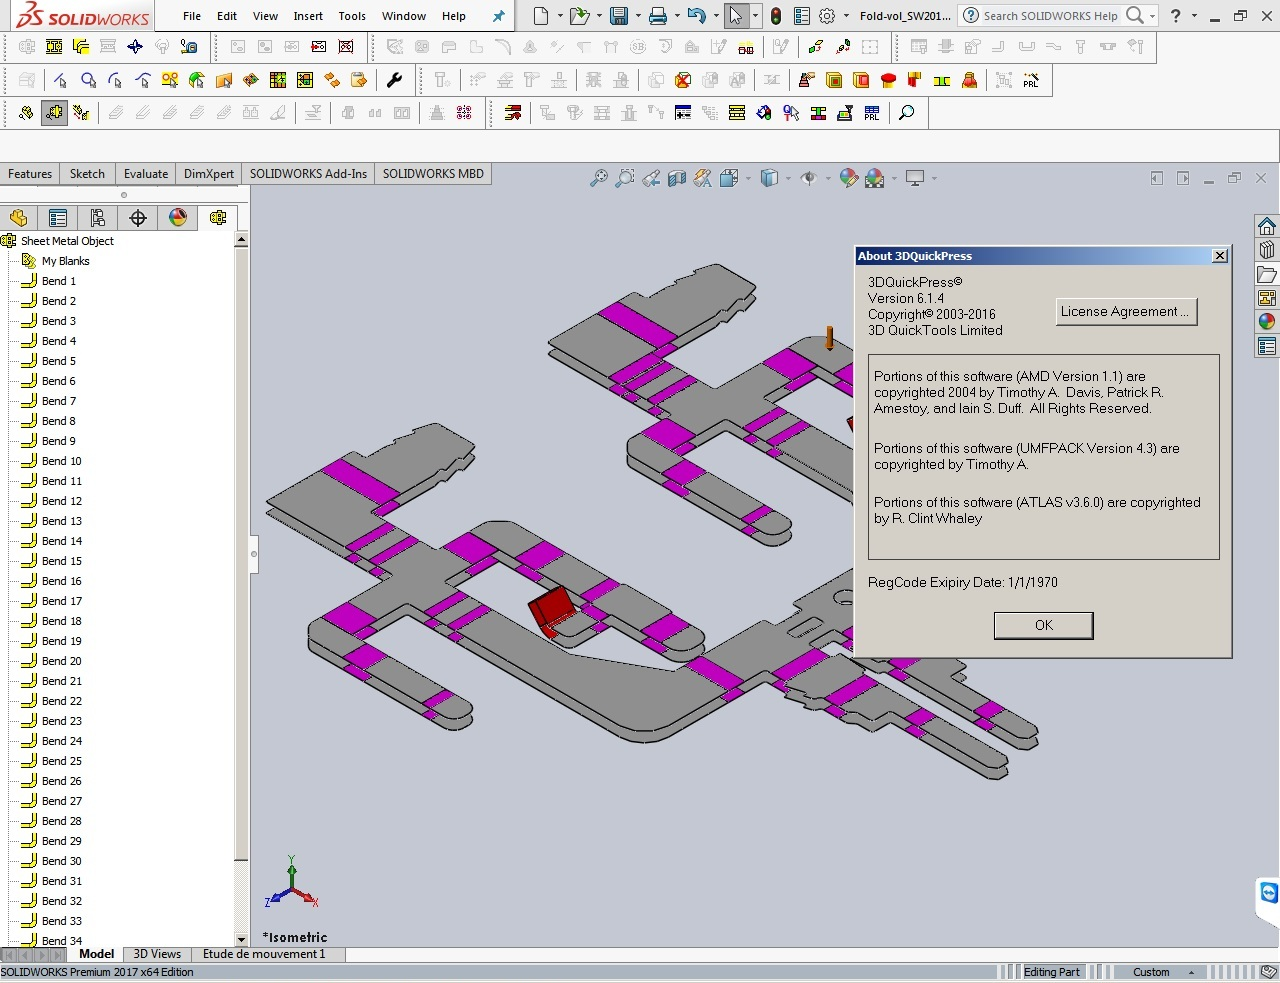 Working with 3DQuickPress v6.1.4 HotFix for SolidWorks 2011-2017 64bit full crack